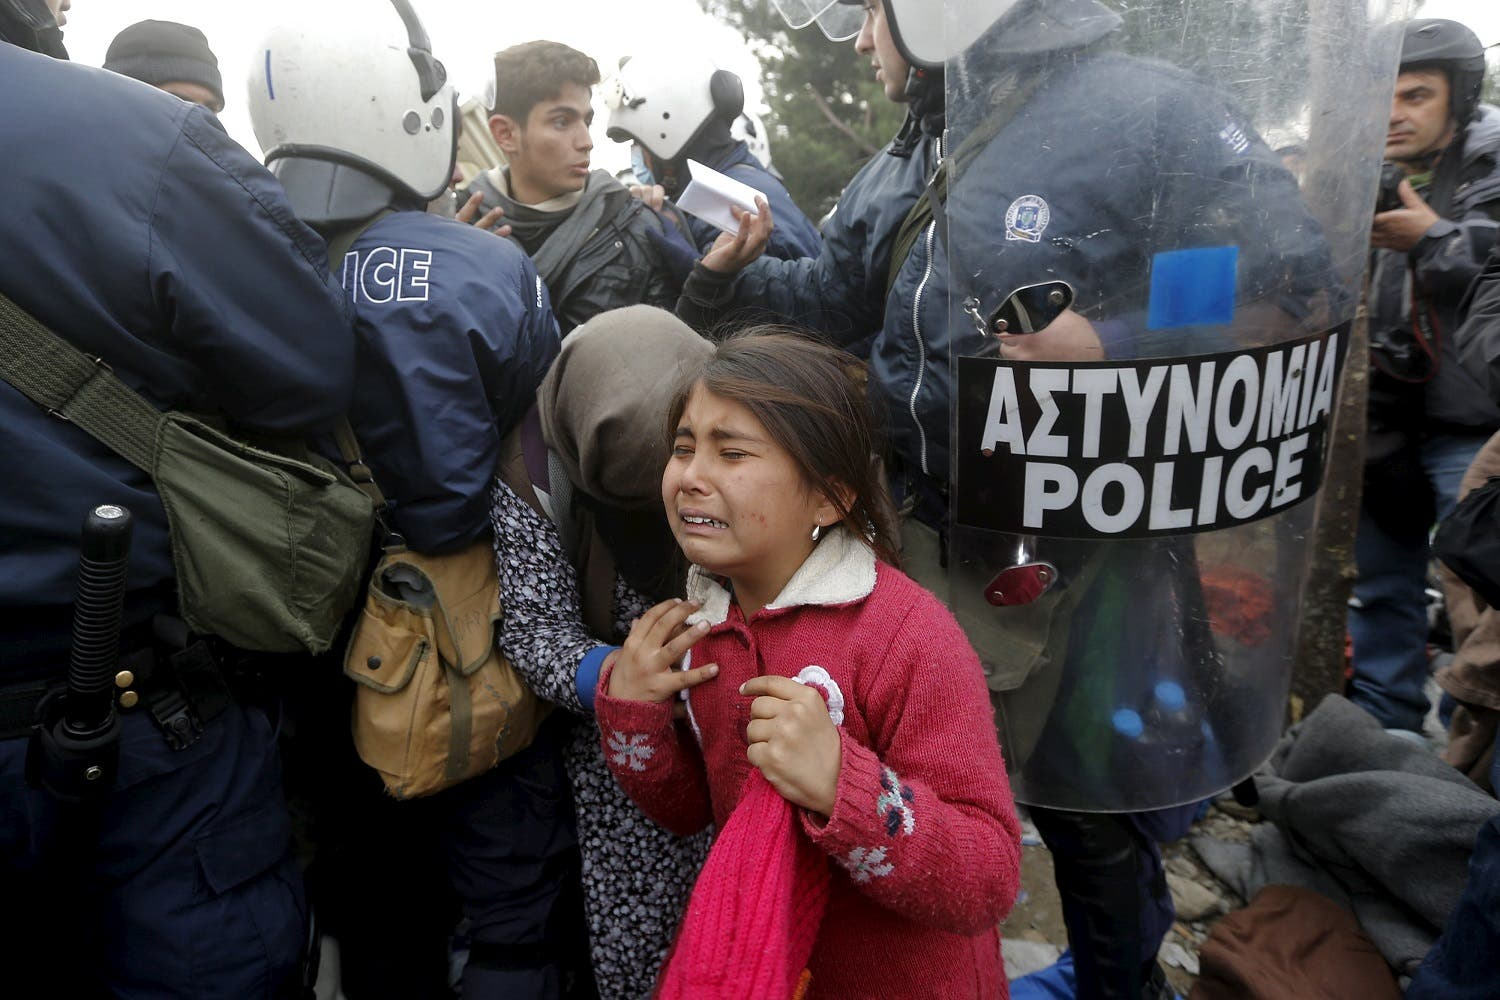 A refugee girl cries after passing through a Greek police cordon before crossing the Greek-Macedonian border near the village of Idomeni. (Reuters)